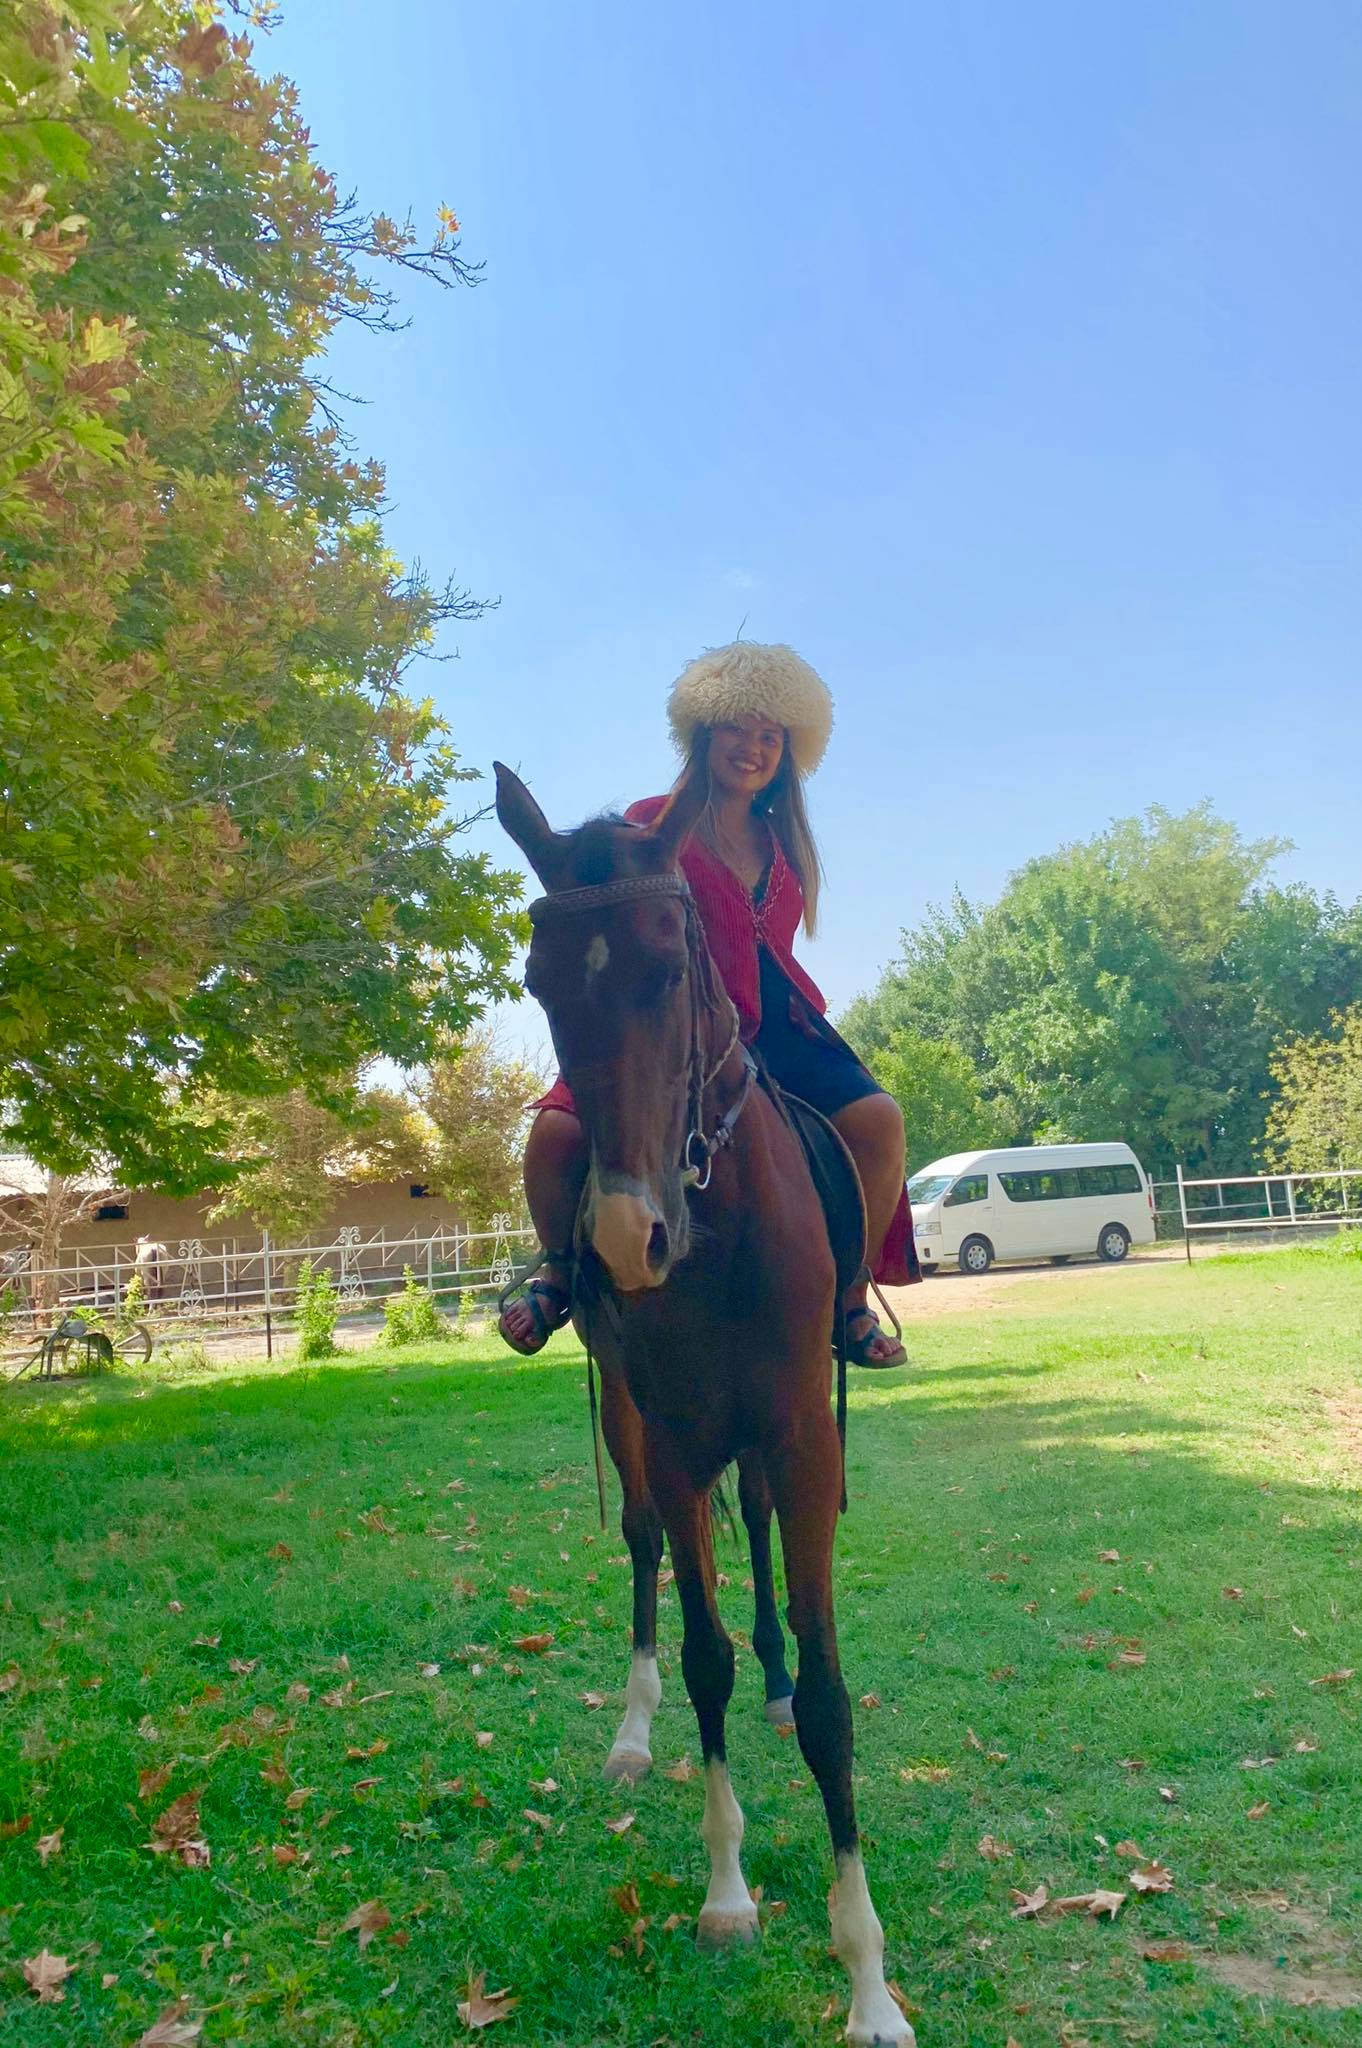 Kach Solo Travels in 2019 Visiting a Horse Farm and attending a wedding party7.jpg